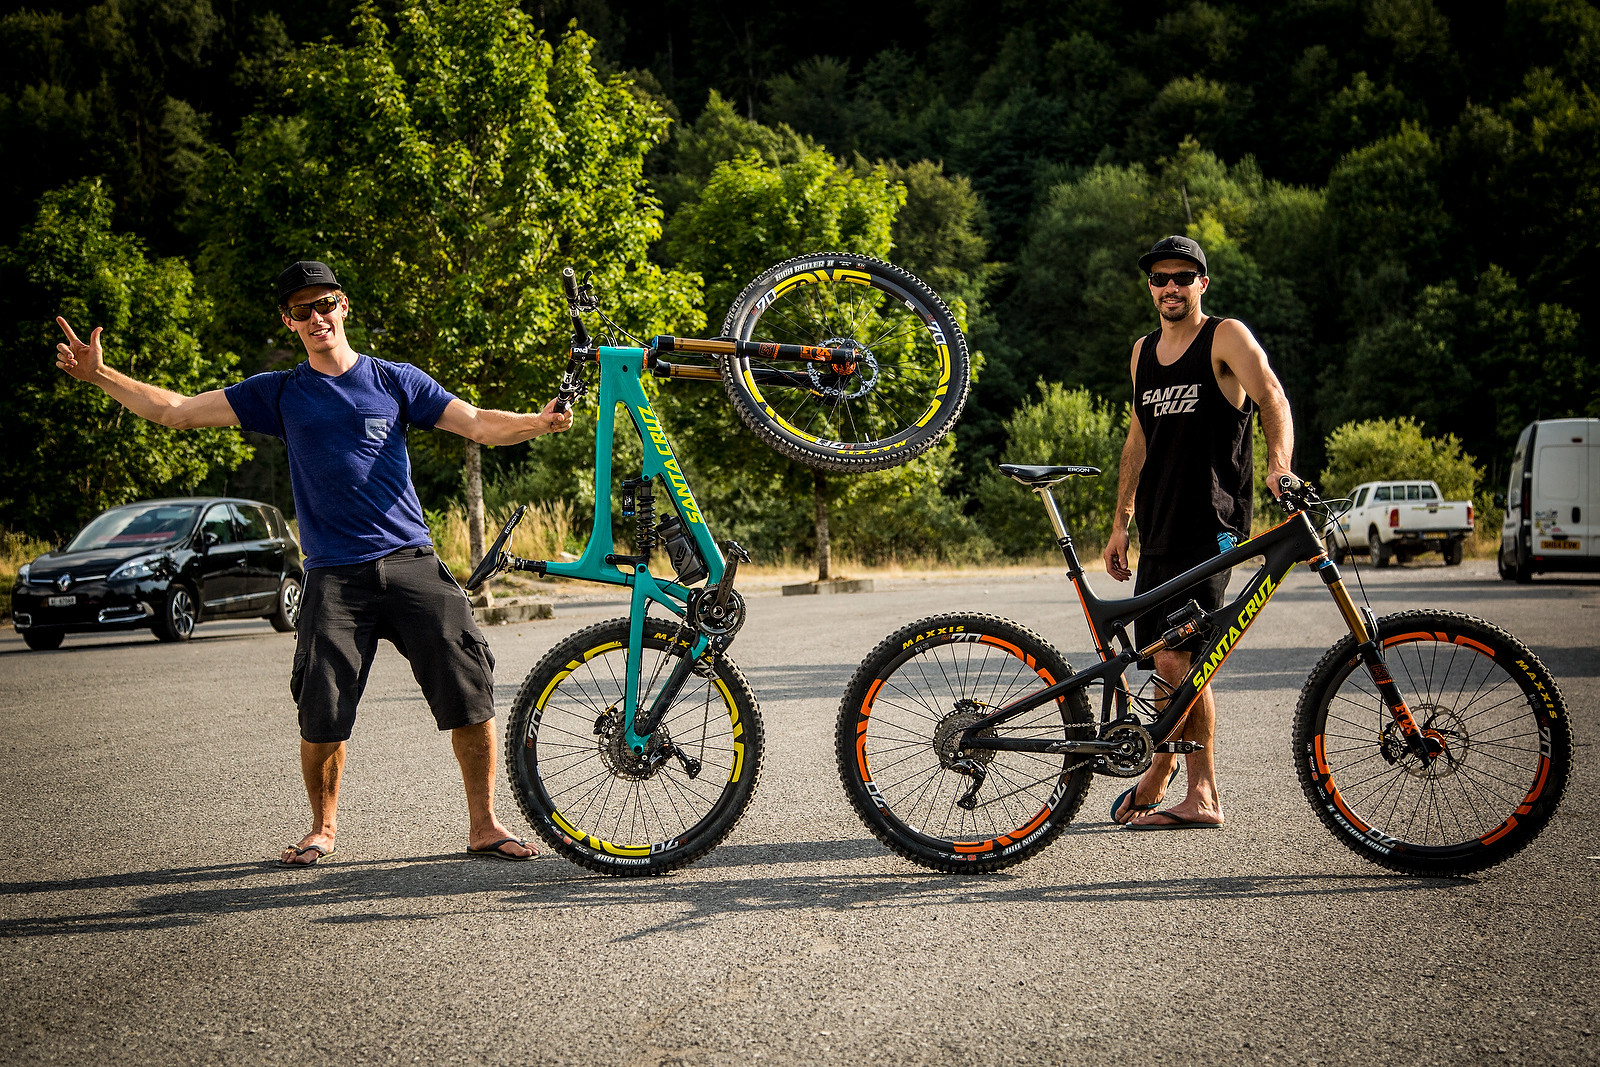 The Nomads with their...Nomads - PIT BITS - Enduro World Series, Samoens, France - Mountain Biking Pictures - Vital MTB